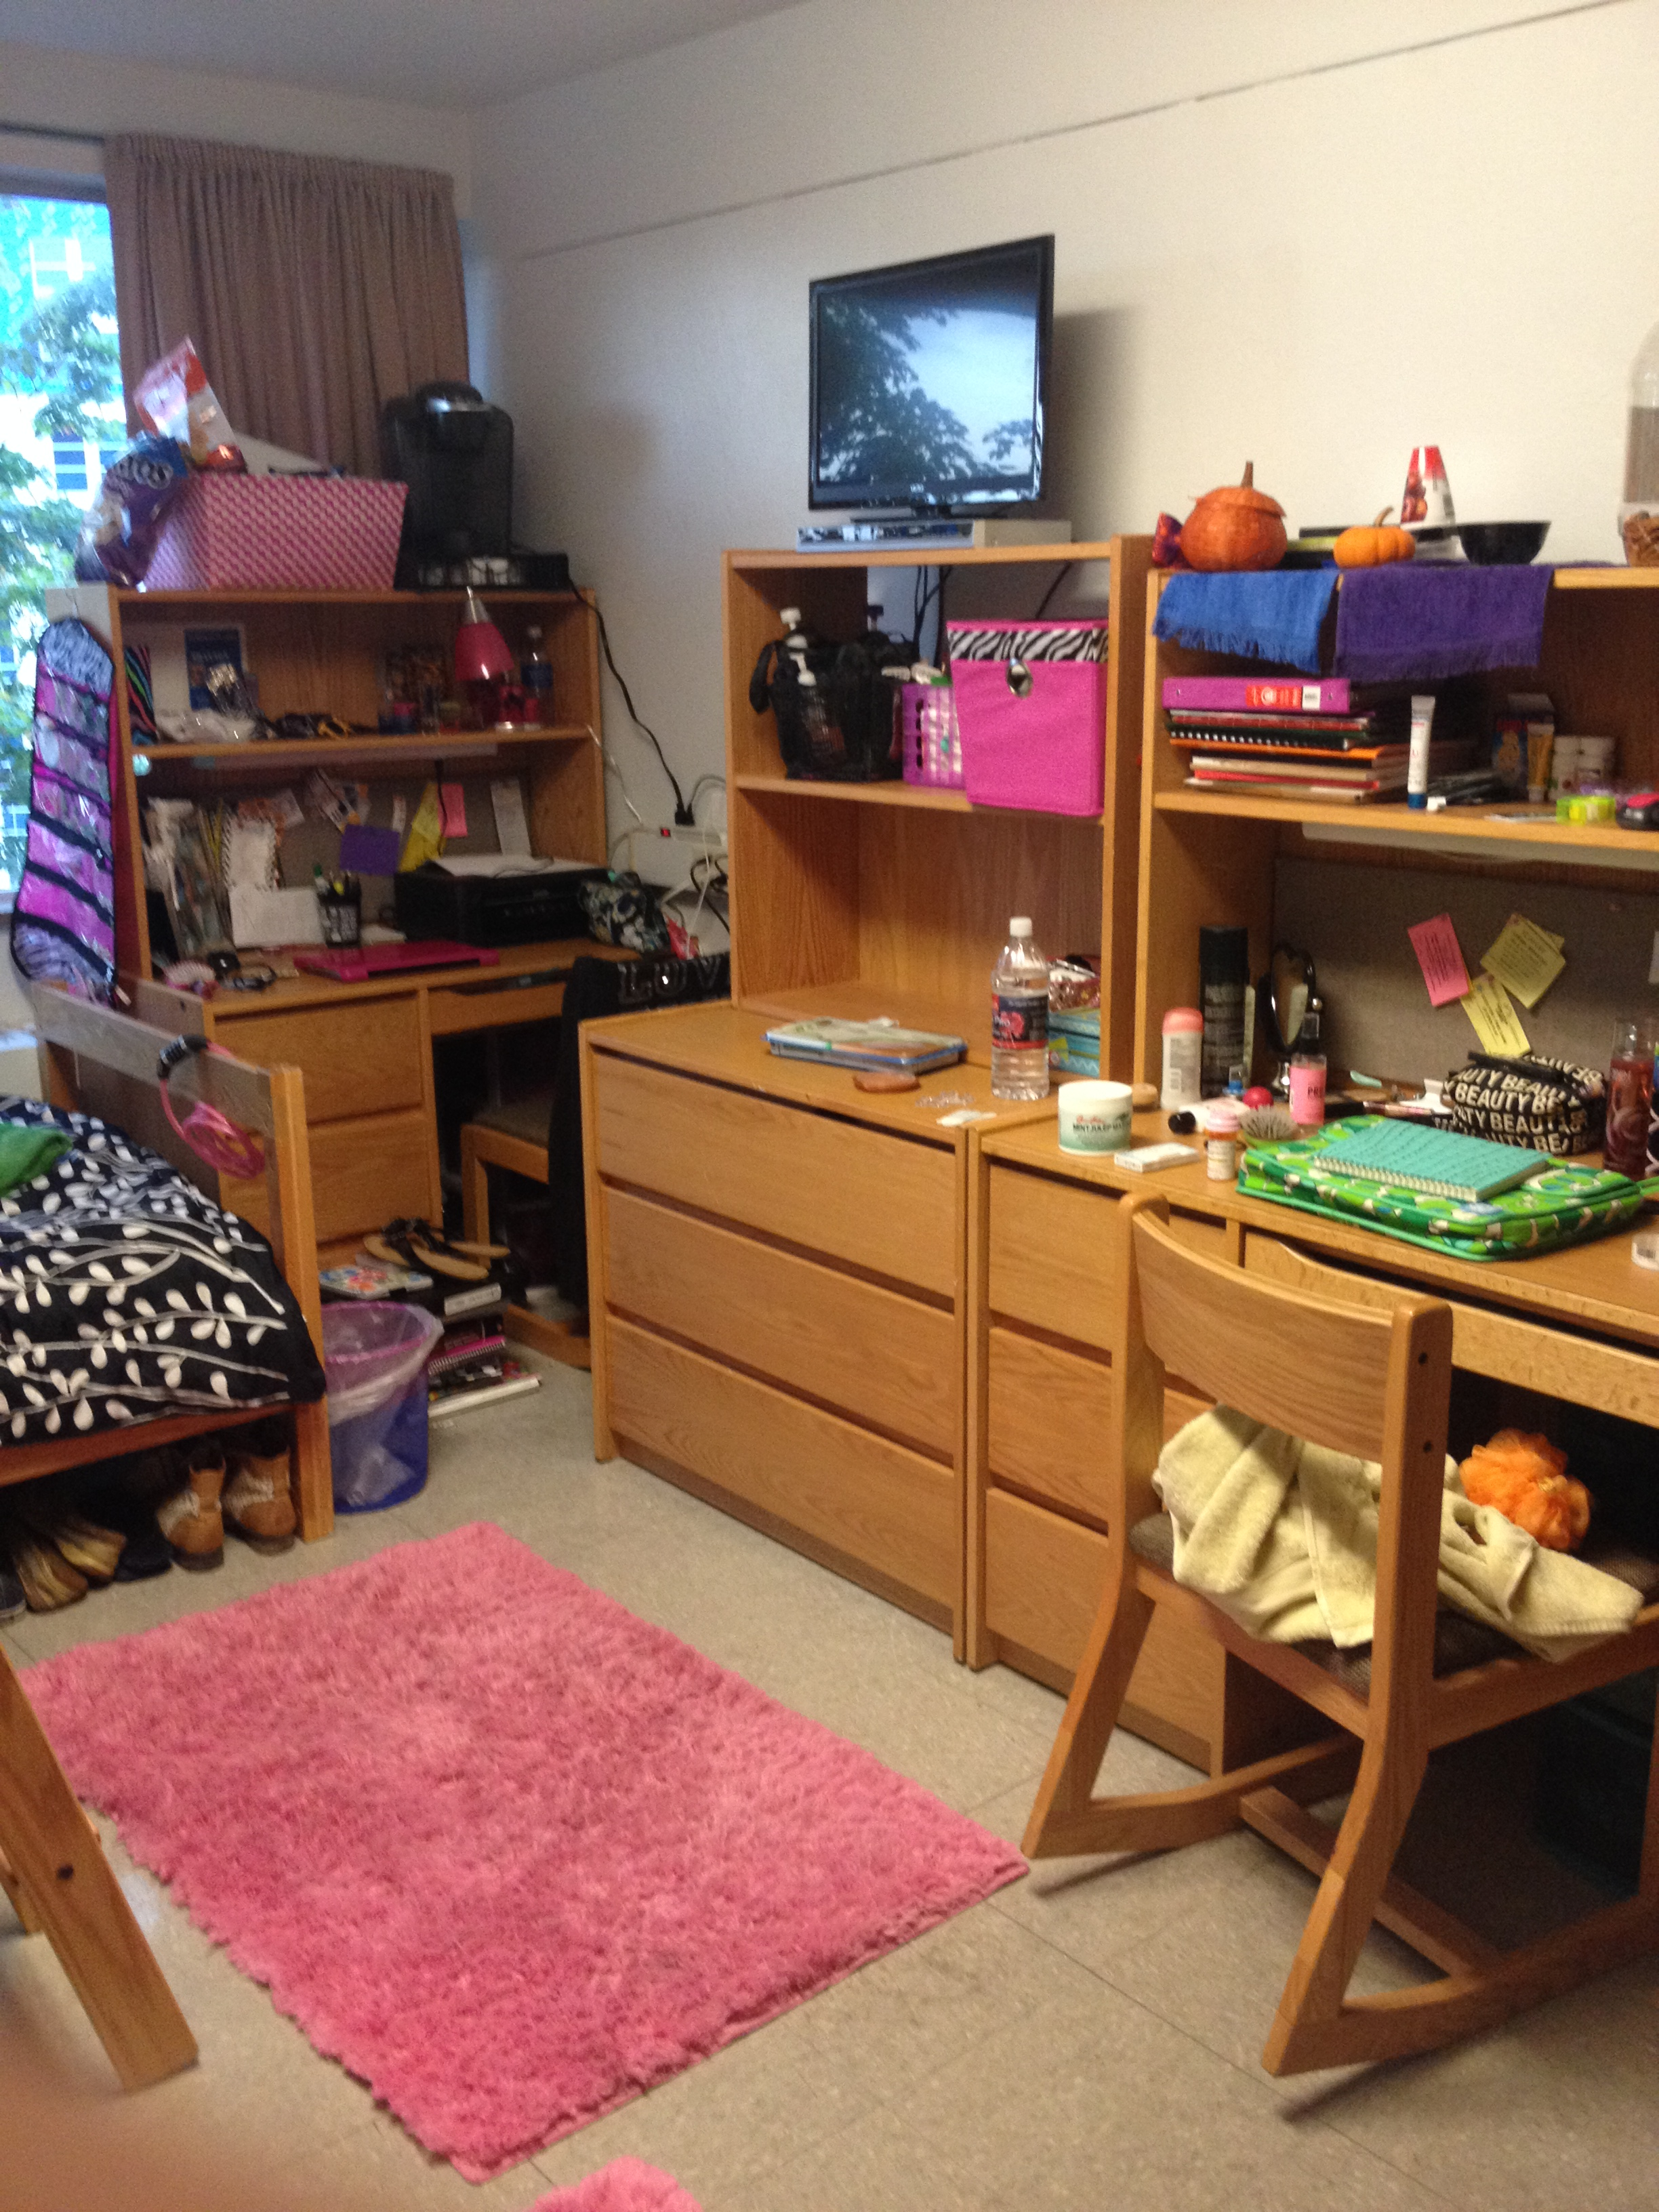 Typical Dorm Room: Does Residence Services Need To Make